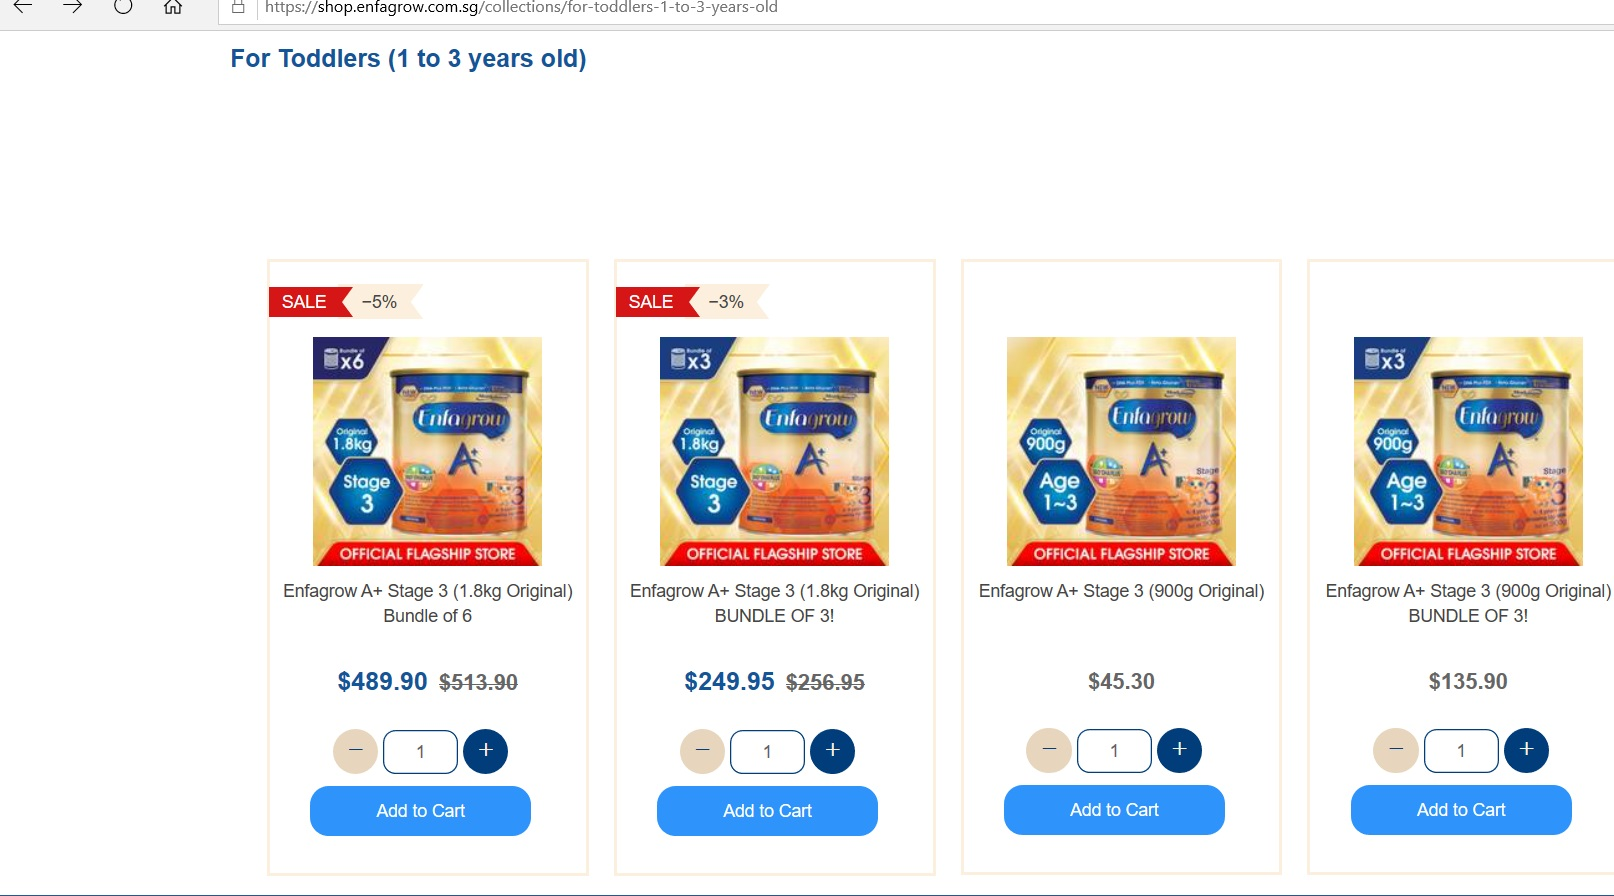 Listings for Enfagrow milk formulas and their prices for toddlers.